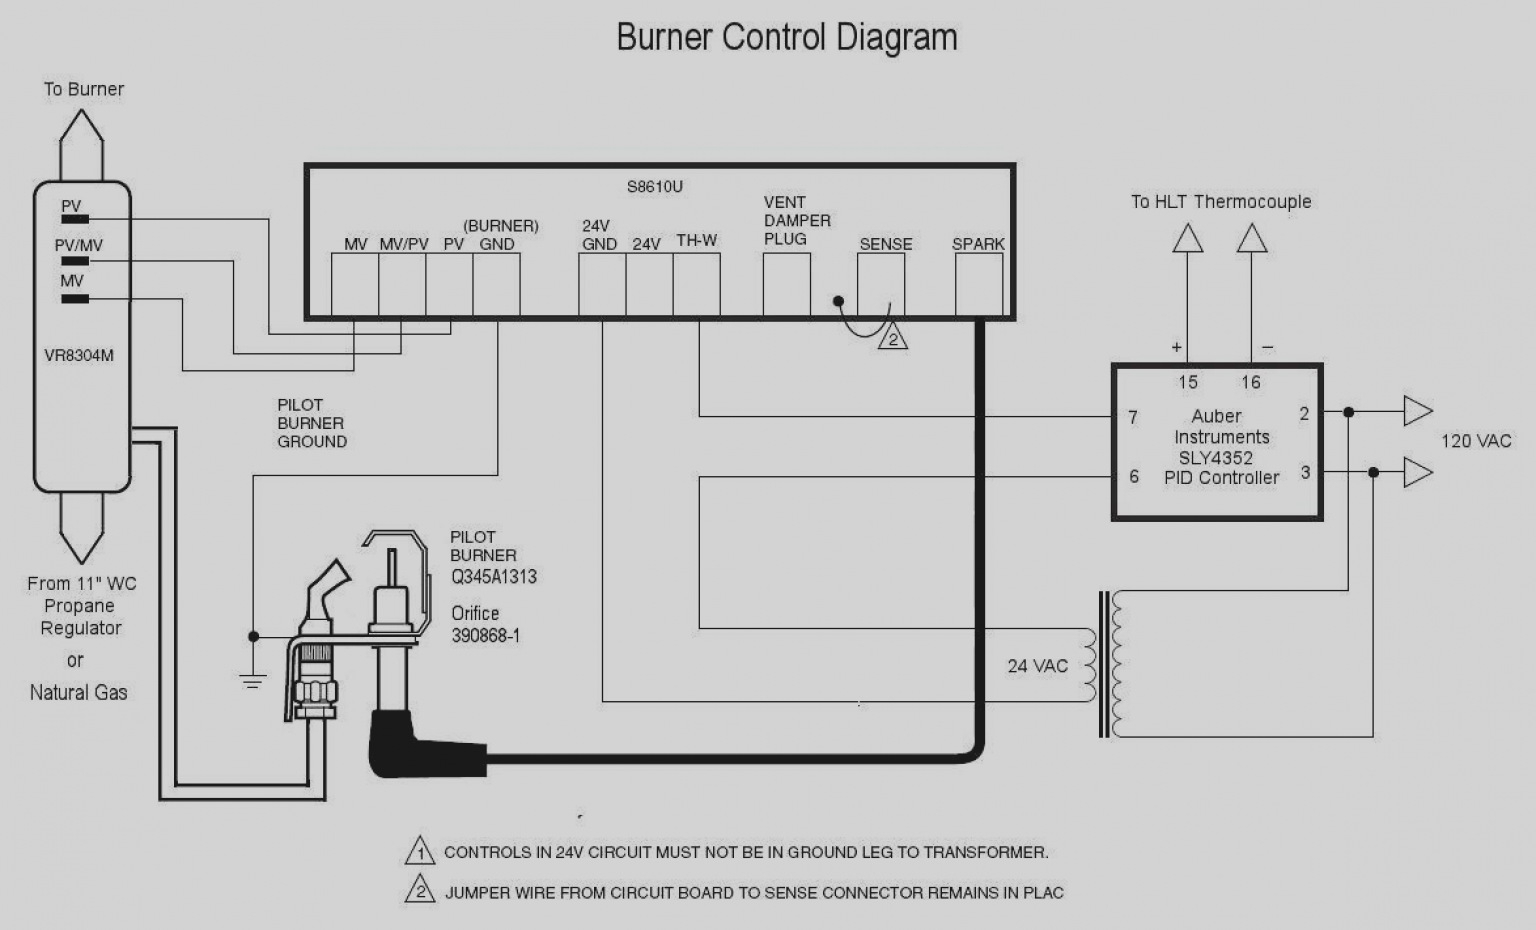 honeywell wiring diagrams wiring diagram Wiring-Diagram Honeywell Burner Control 7840